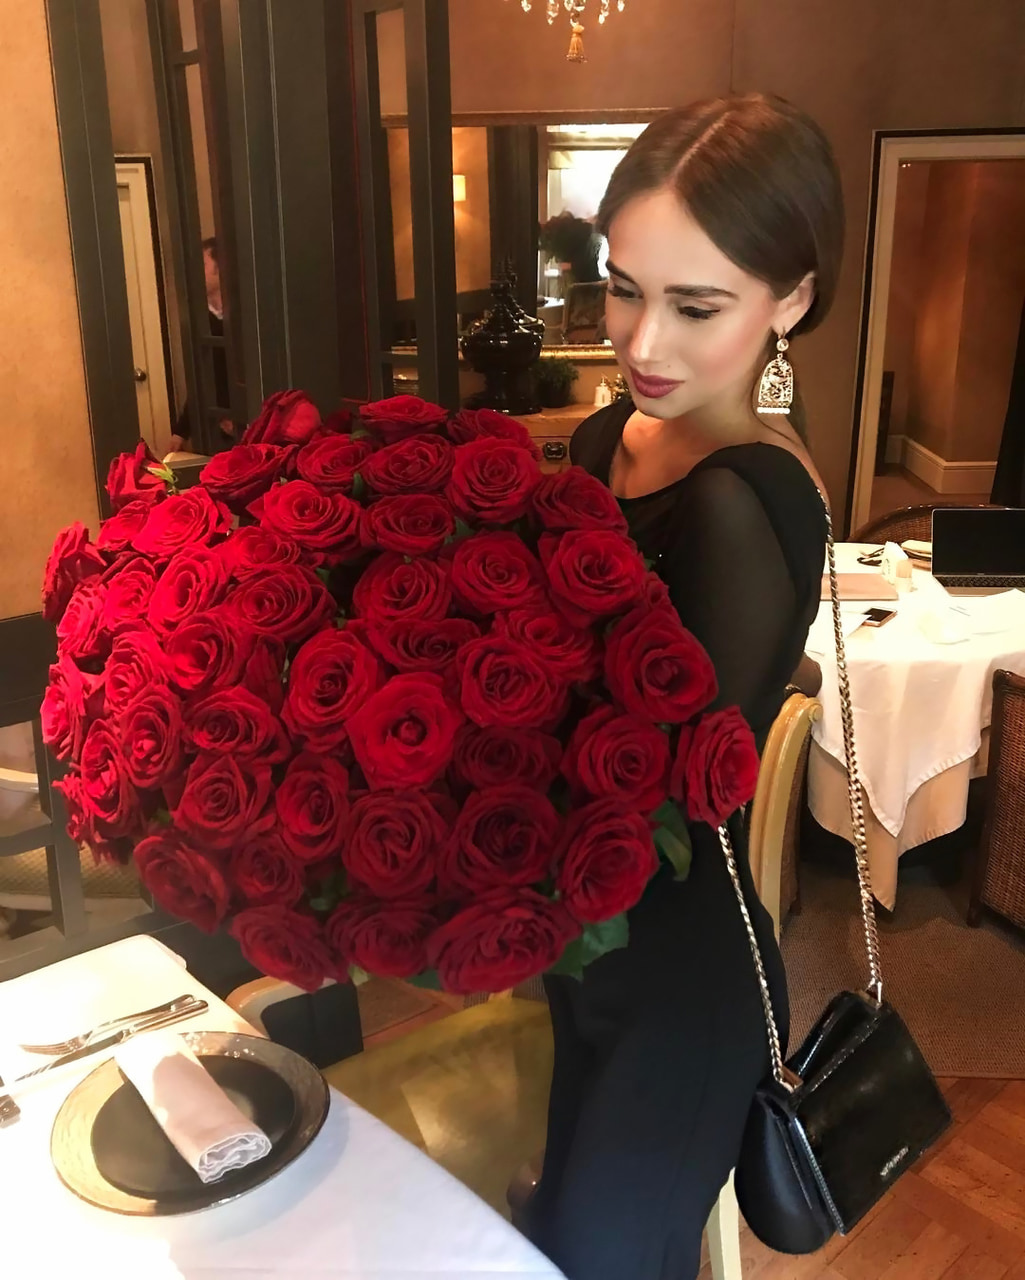 beautiful, flowers, and russian Girl image